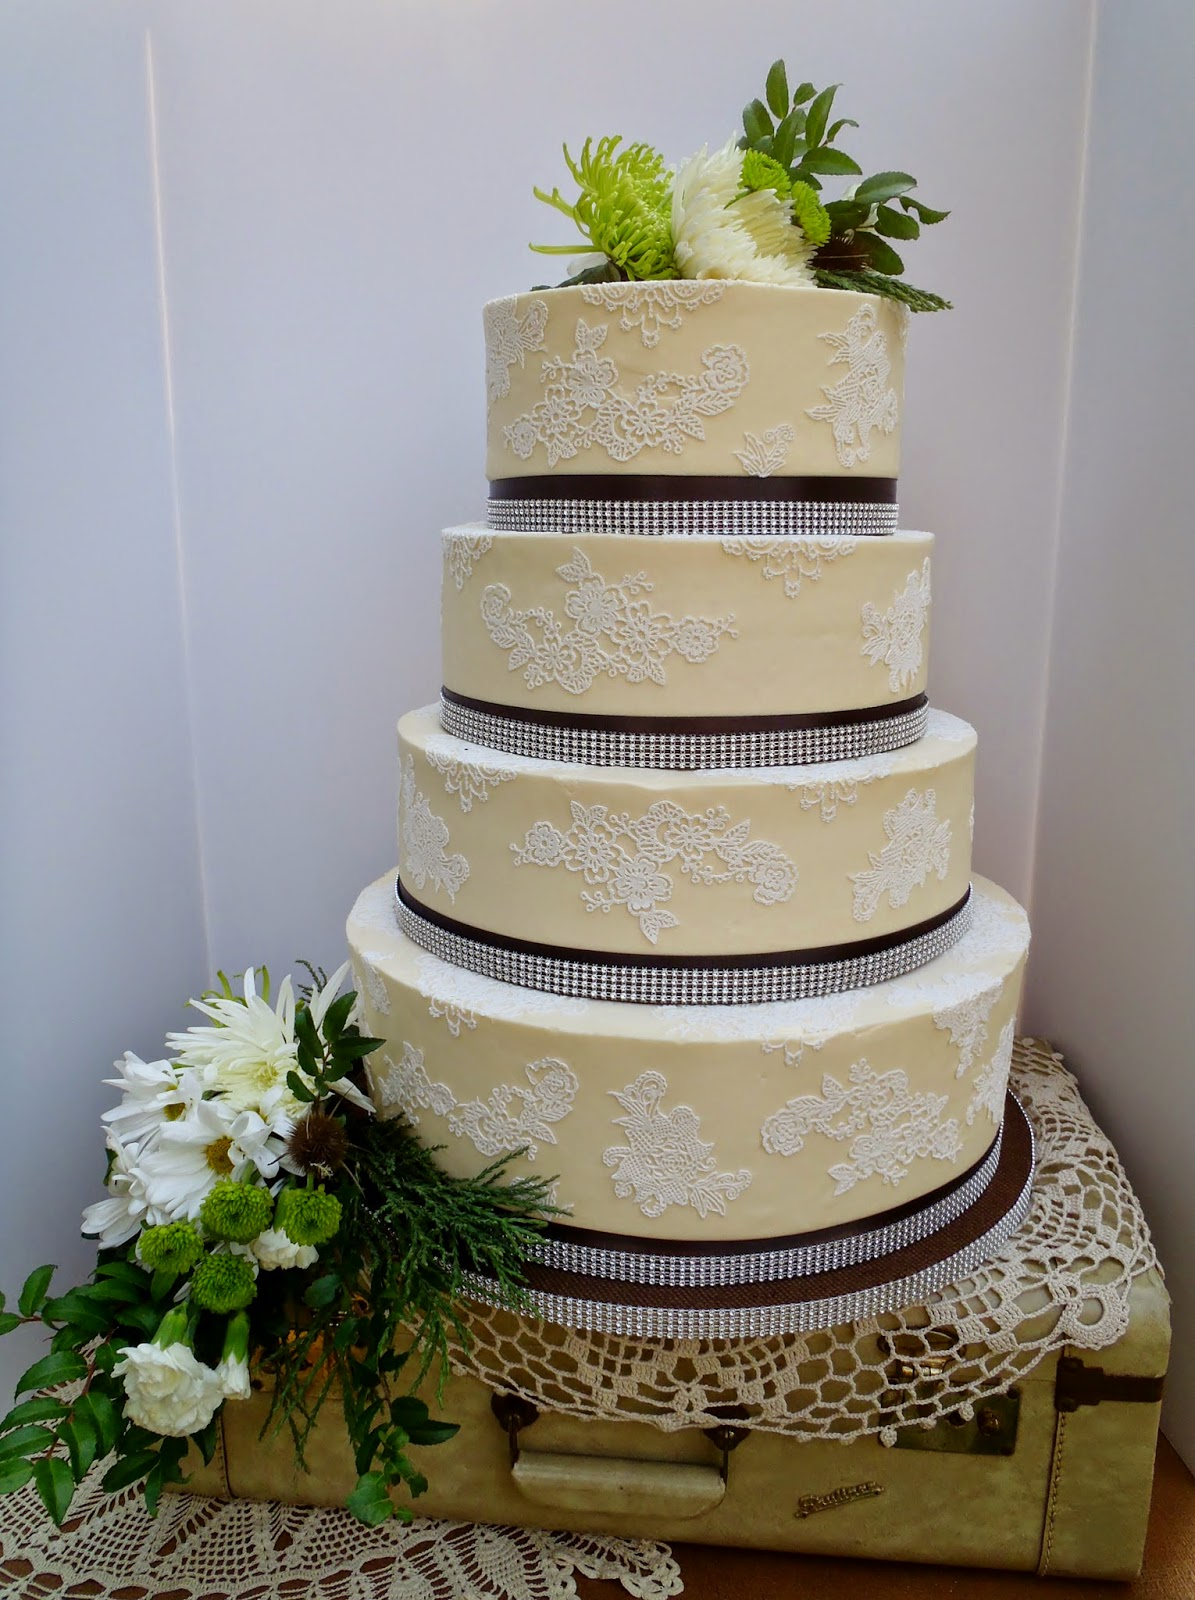 Simply Delicious Cakes Summer 2014 Weddings